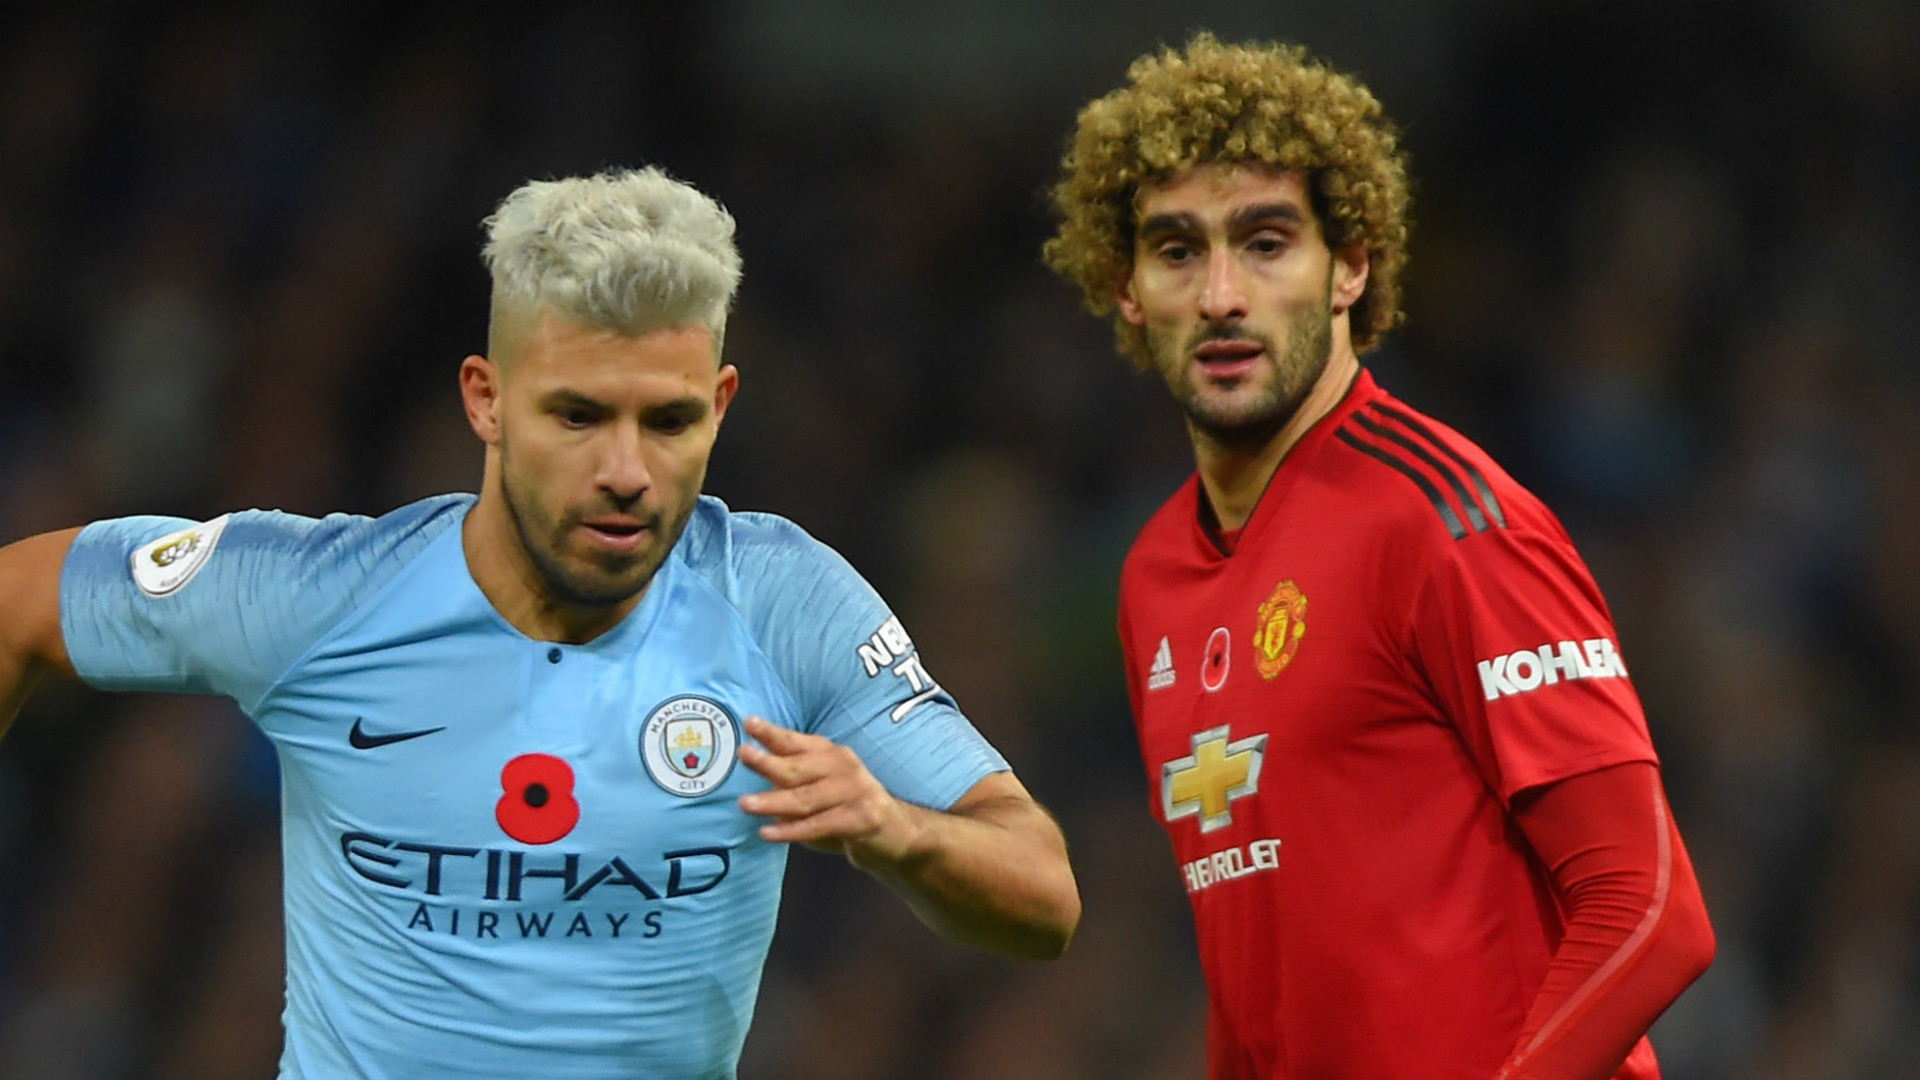 'I think they will lose' - Fellaini confident Man City can be caught